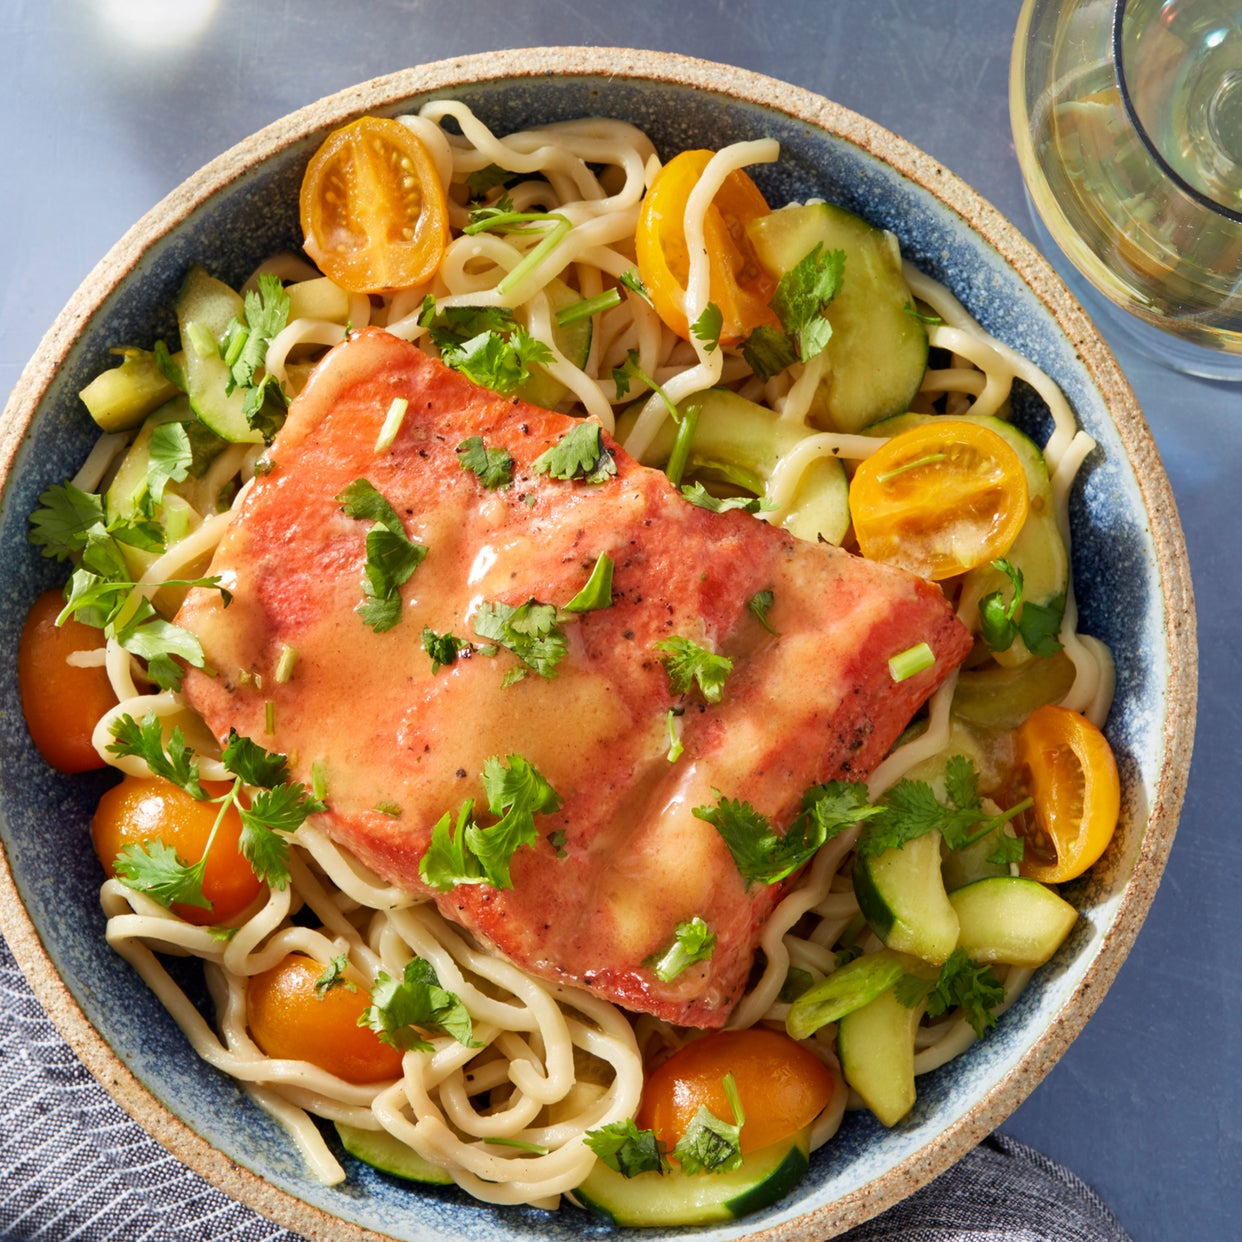 Miso-Butter Salmon & Lo Mein Noodles with Cucumber & Cherry Tomatoes